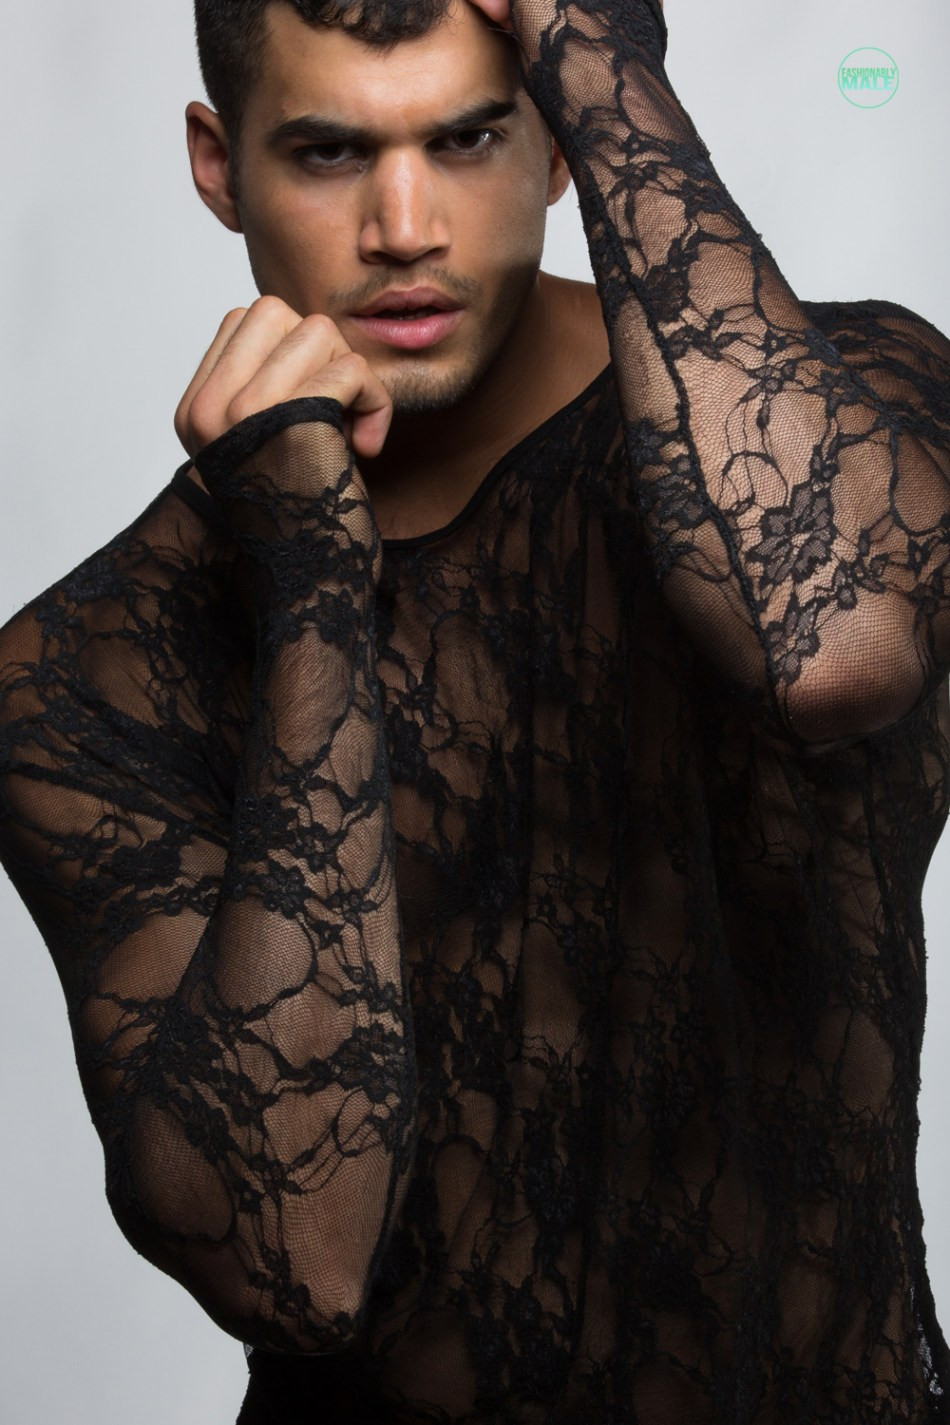 Ariel by G. Kavalero for Fashionably Male3